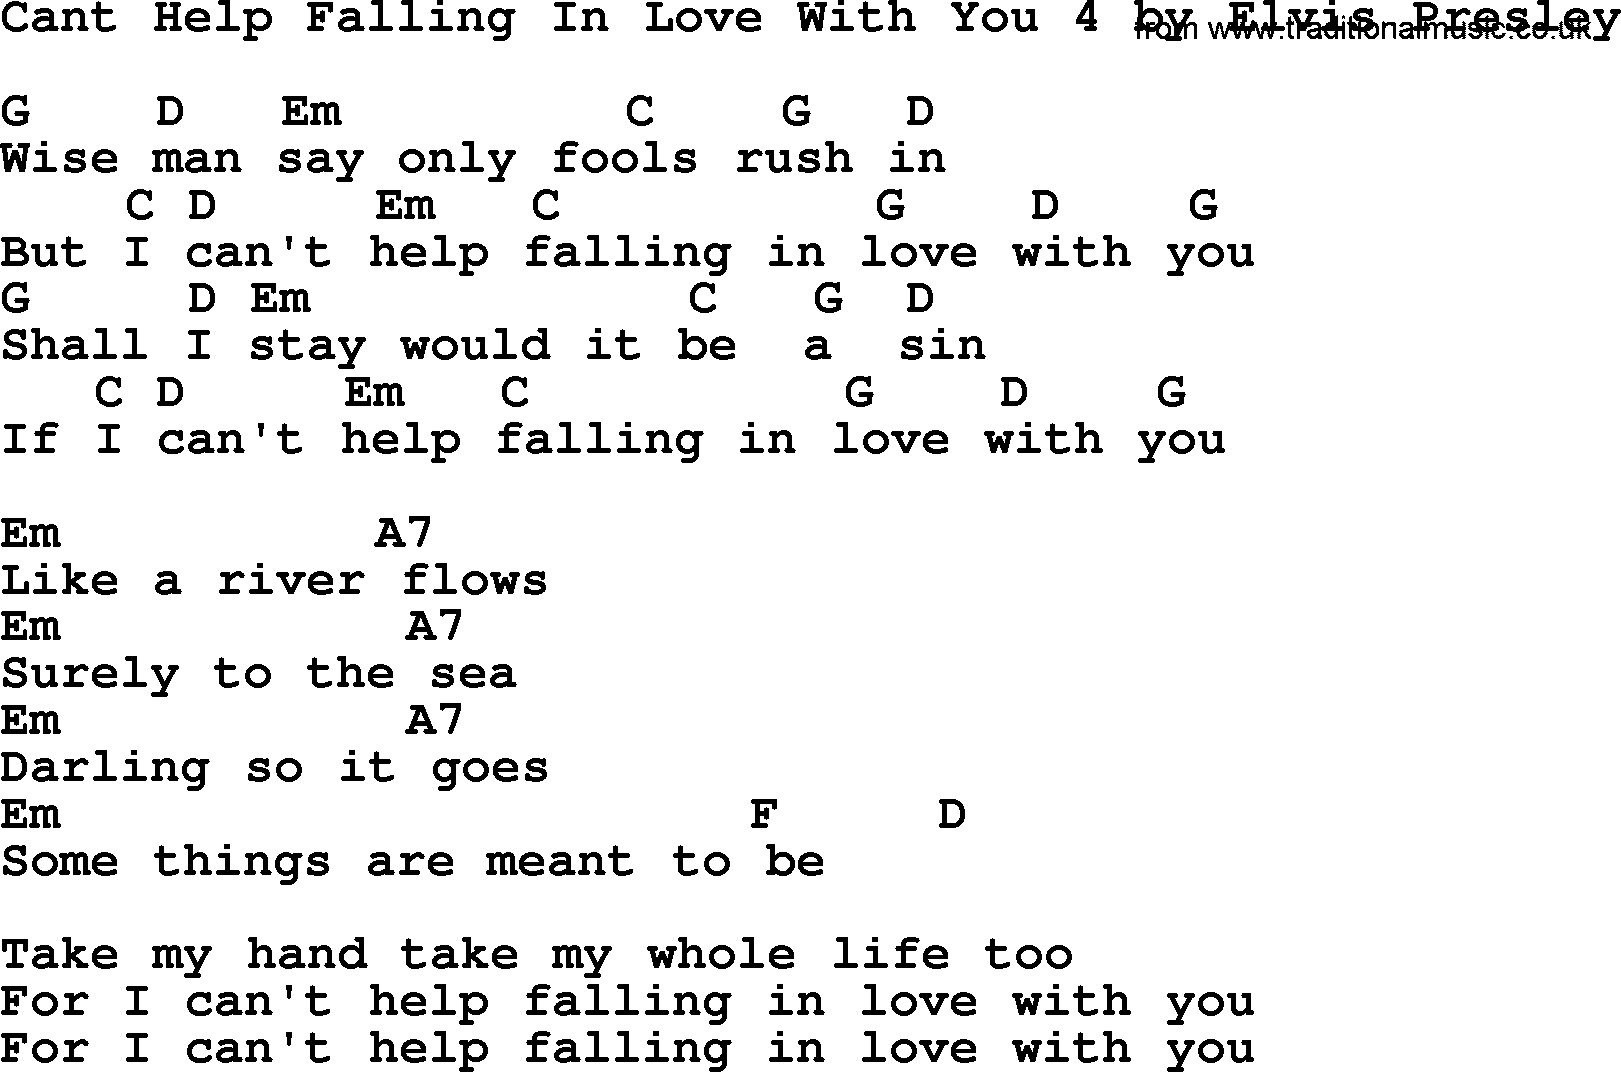 I Can T Help Falling In Love With You Chords Cant Help Falling In Love With You 4 Elvis Presley Lyrics And